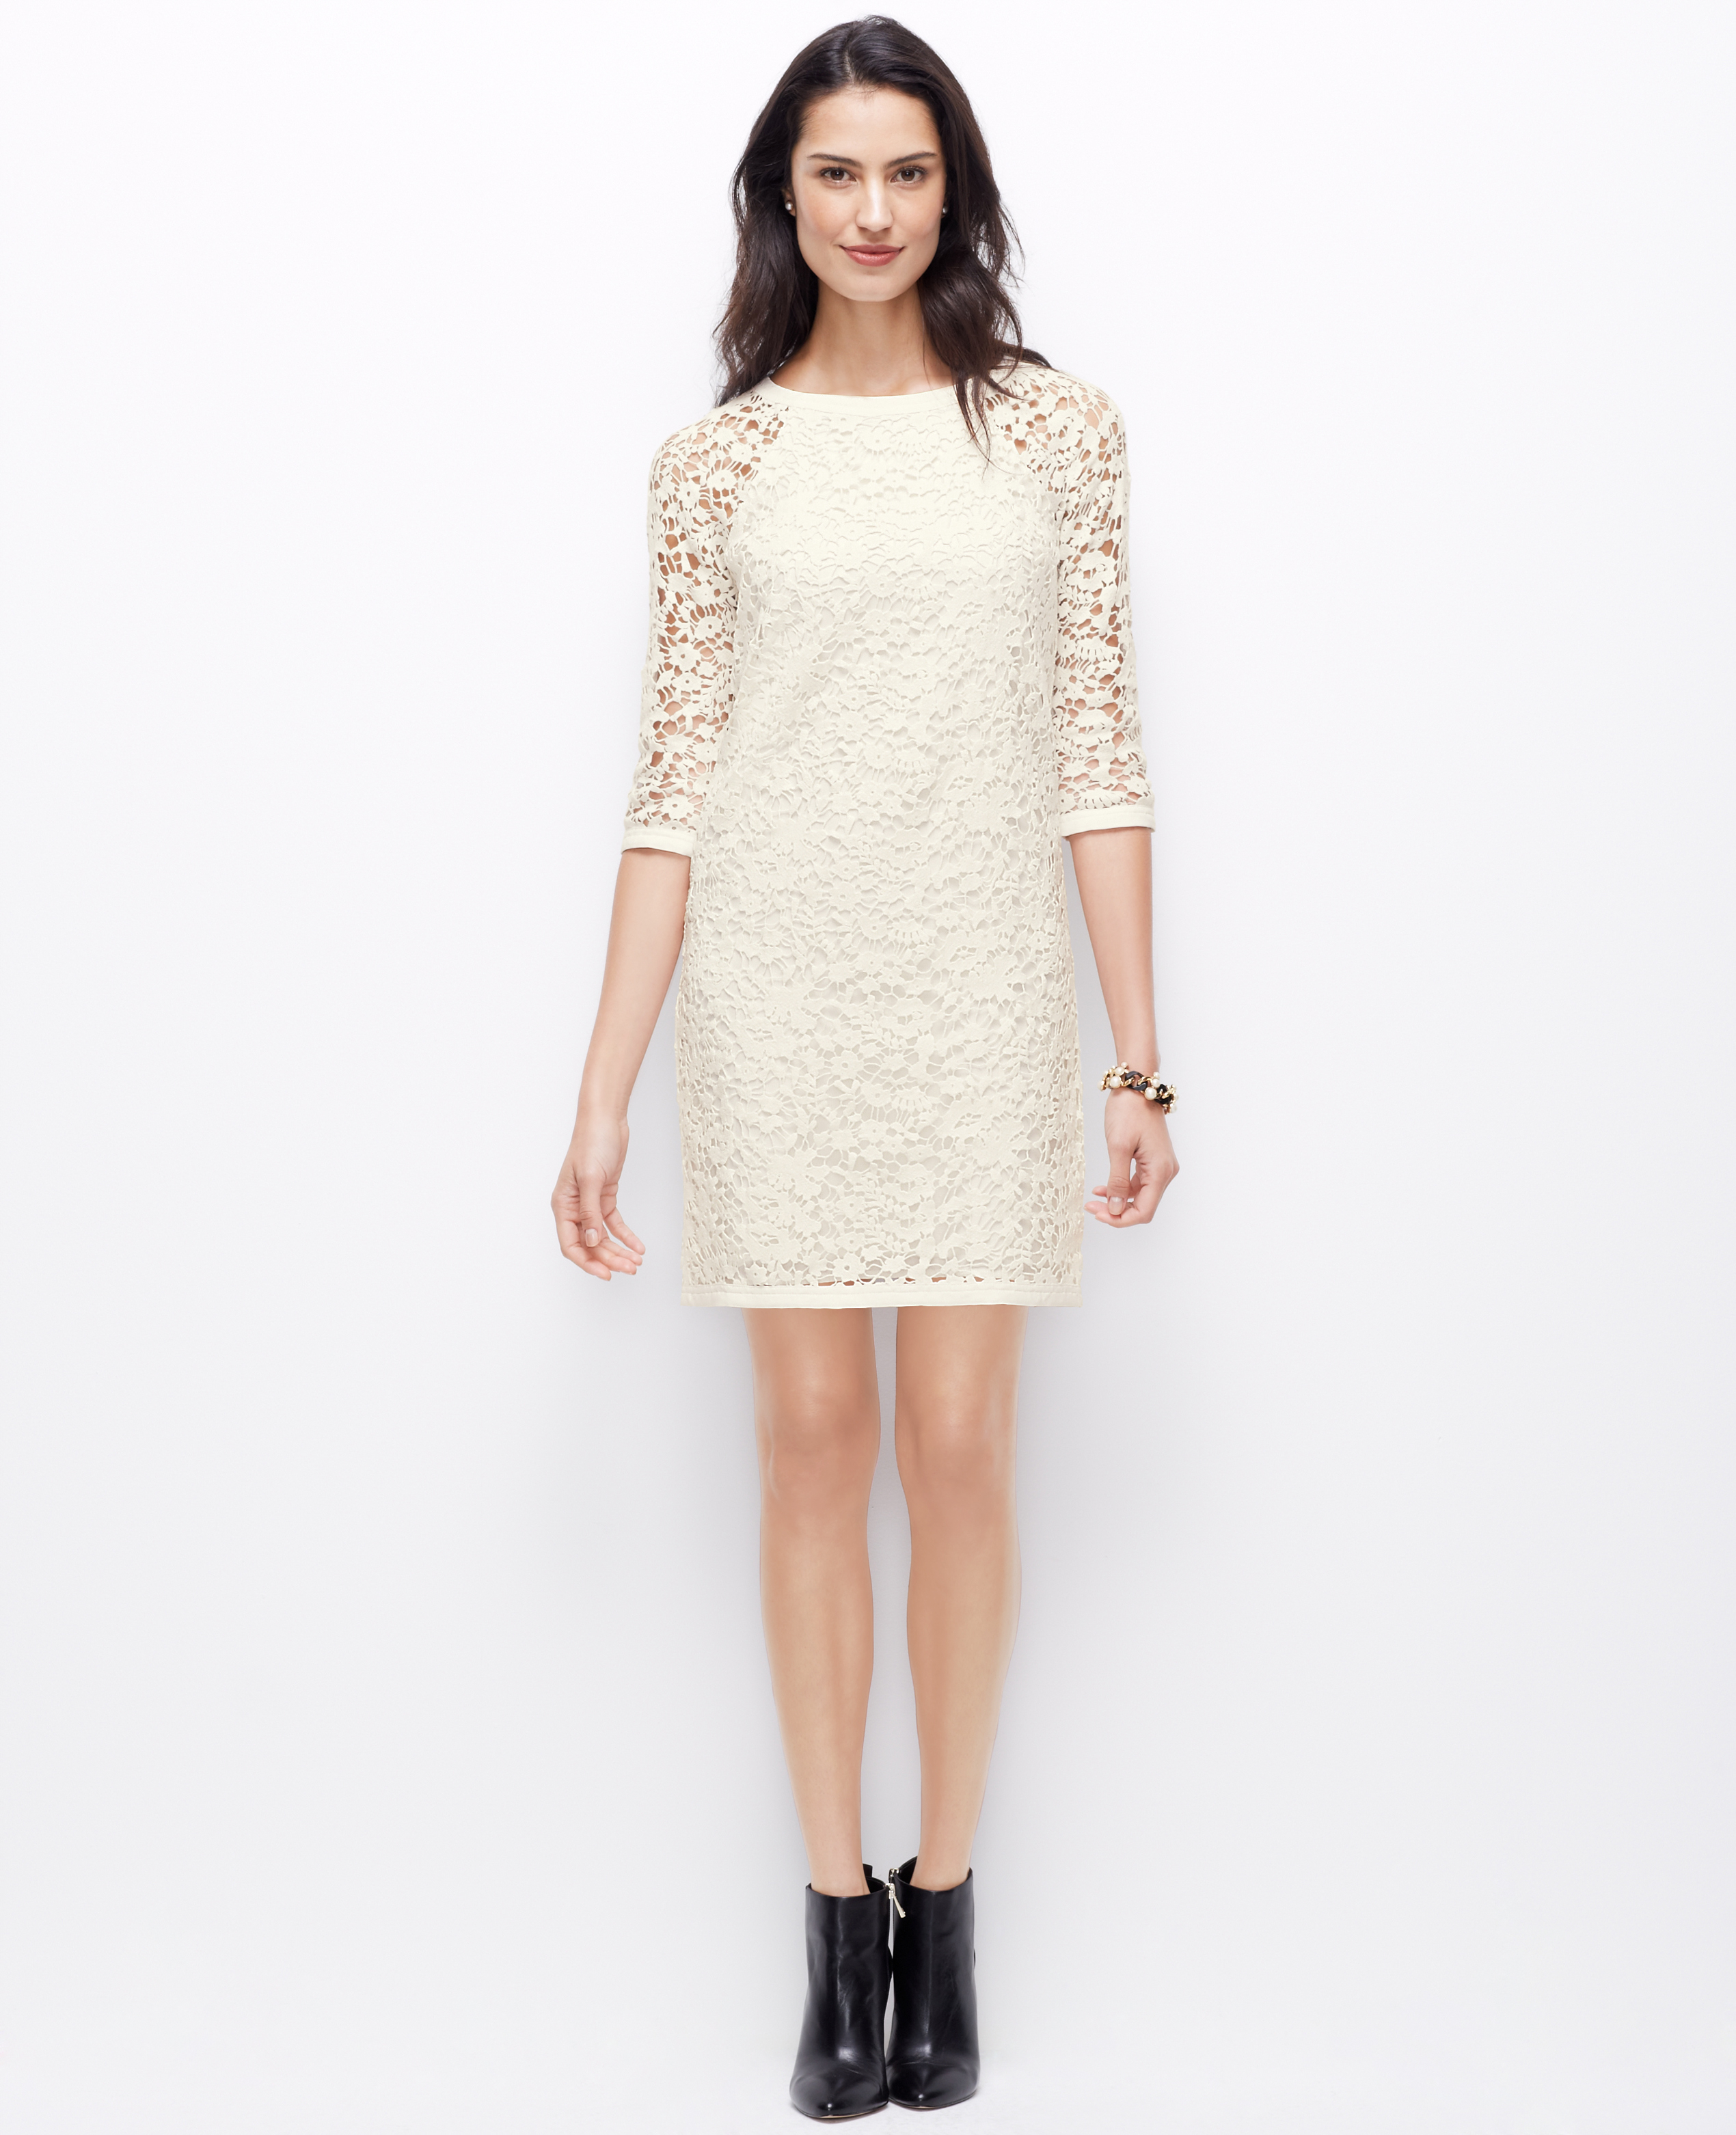 Ann taylor Petite Lace Shift Dress in White | Lyst